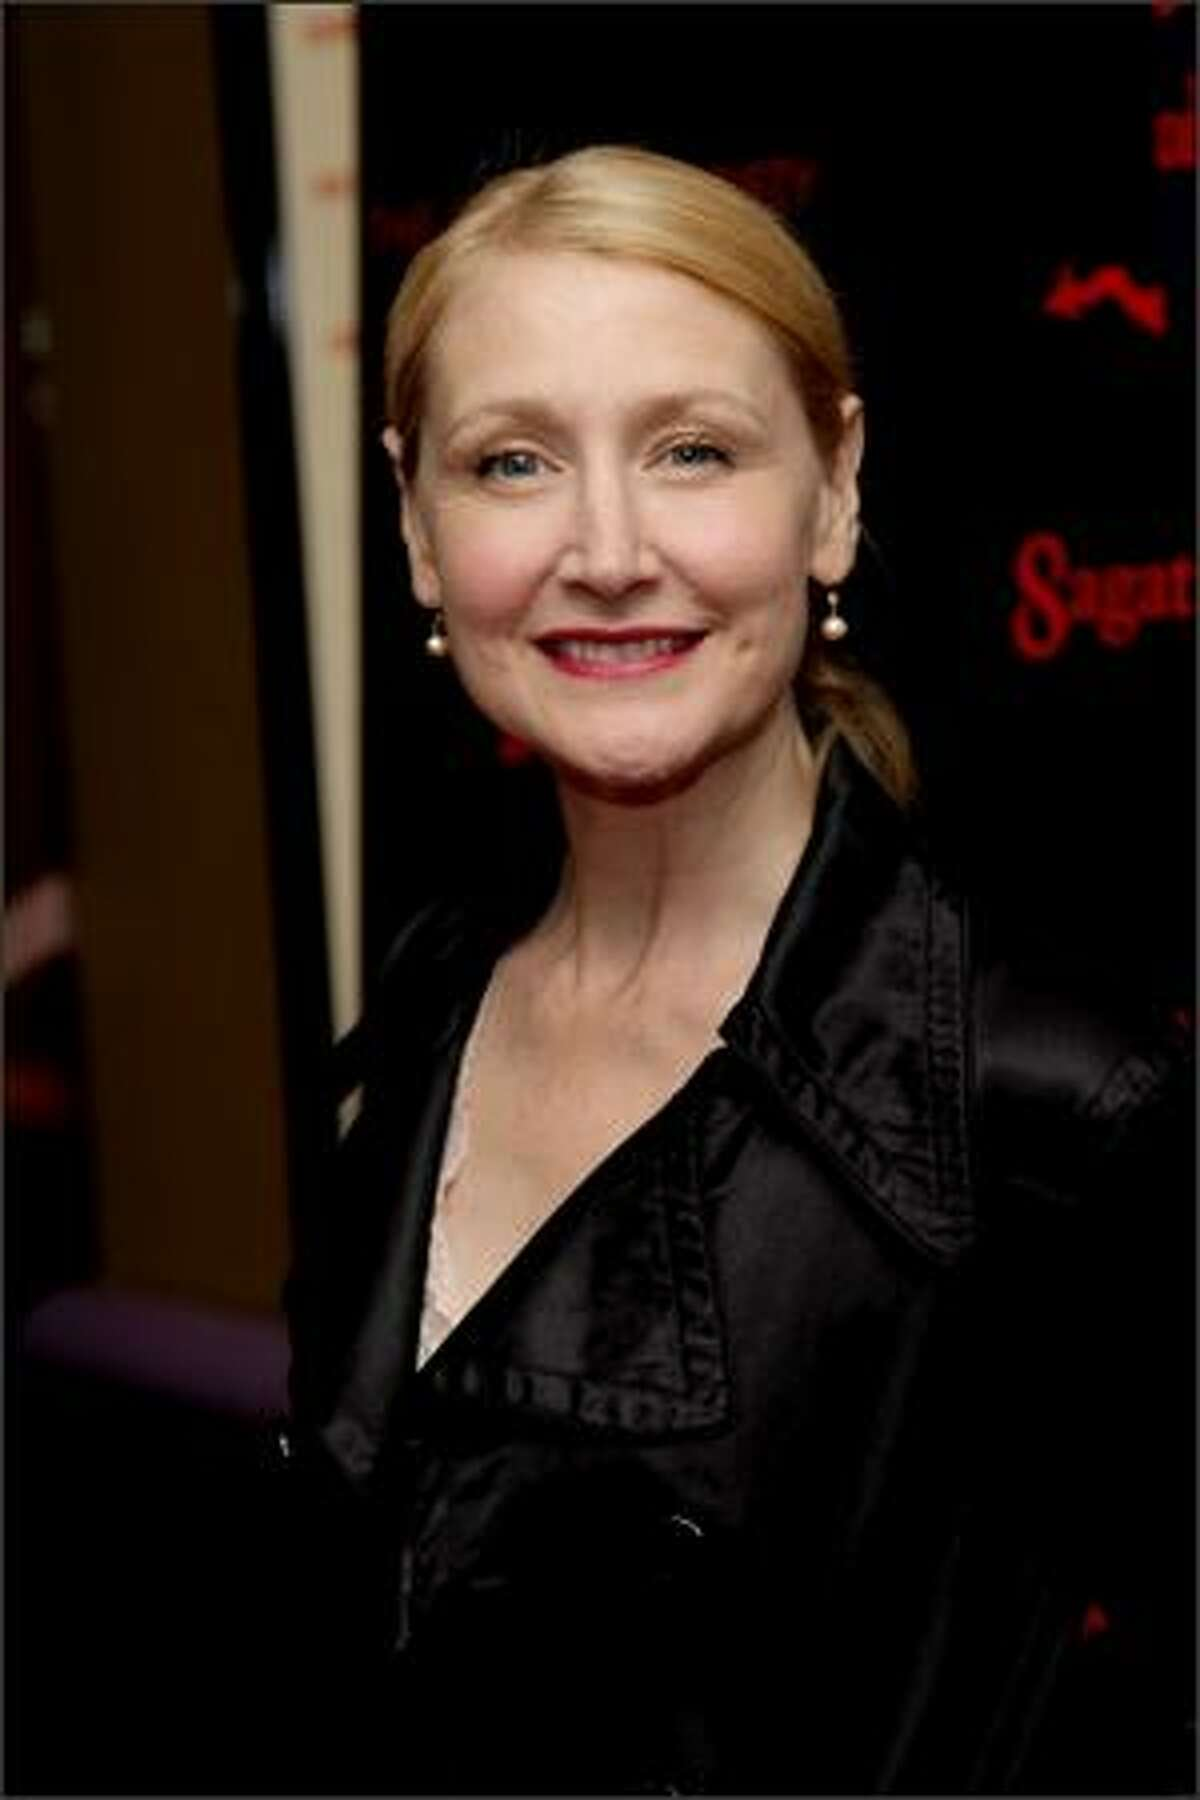 Actress Patricia Clarkson attends the New York premiere of